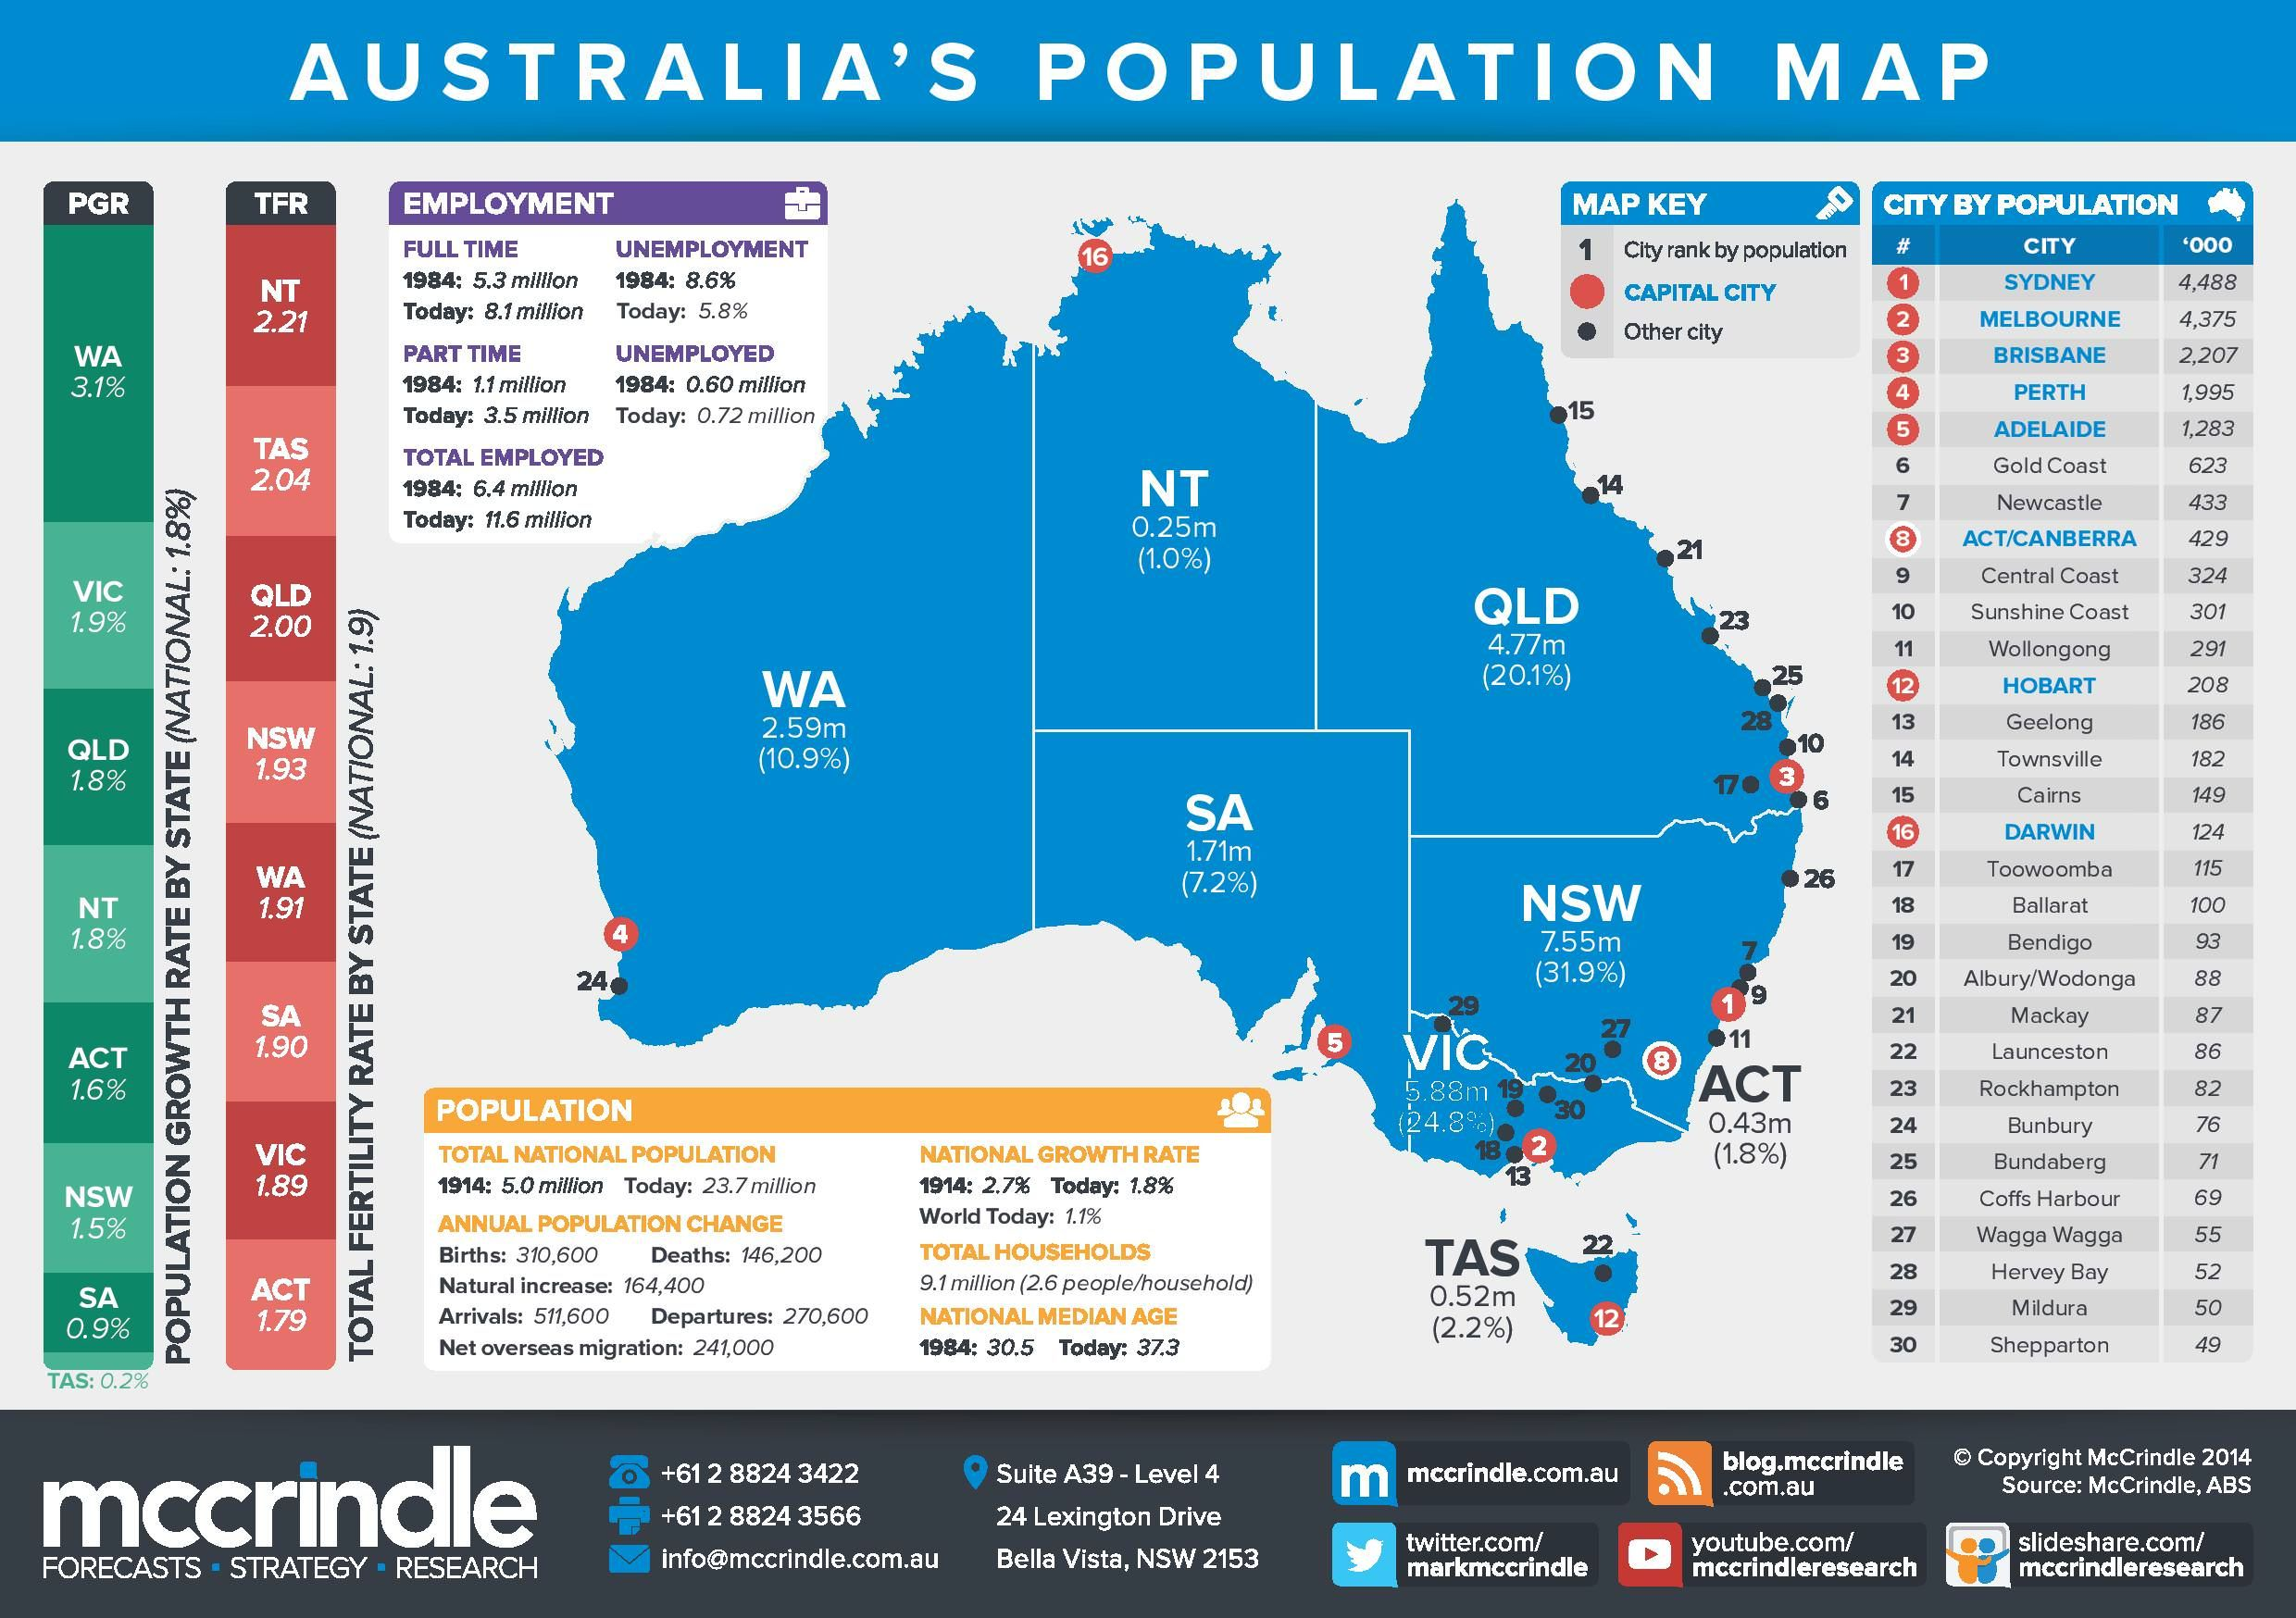 Major Cities In Australia Map.Australian Population Map Showing States And Major Cities Comics